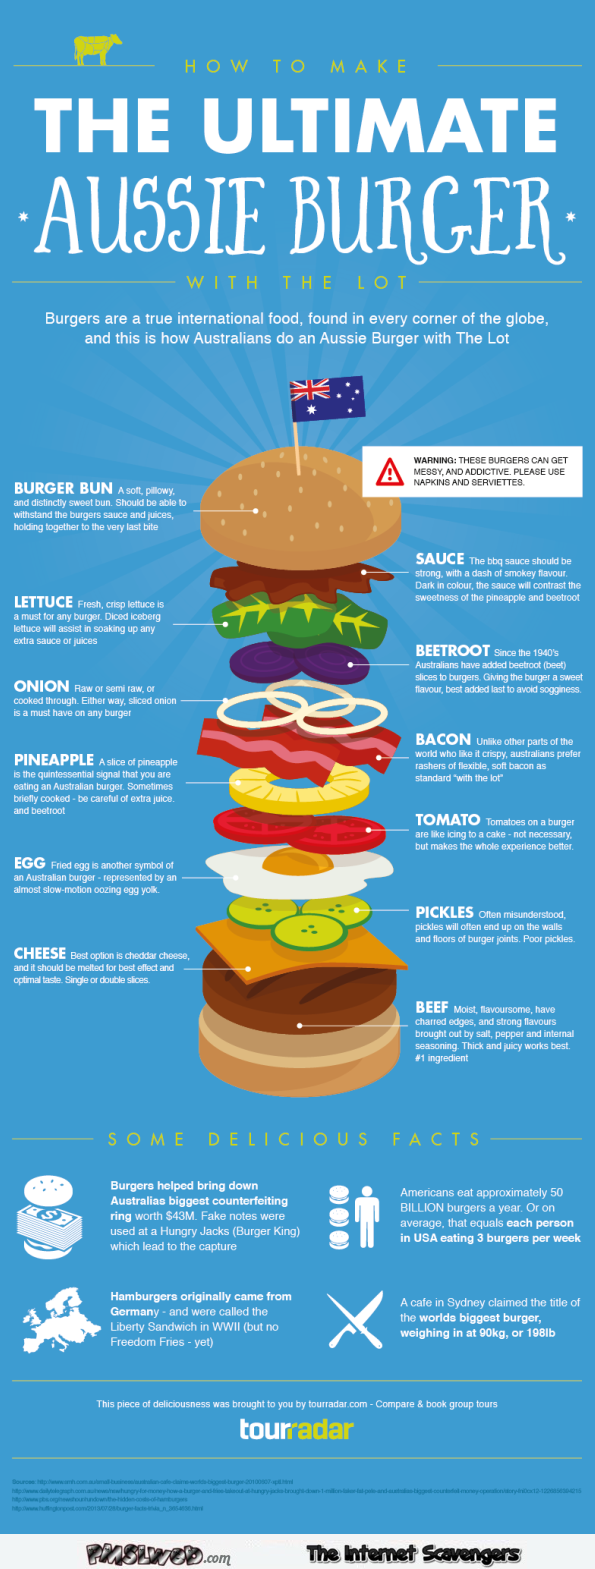 the ultimate Aussie burger – Aussie humor @PMSLweb.com